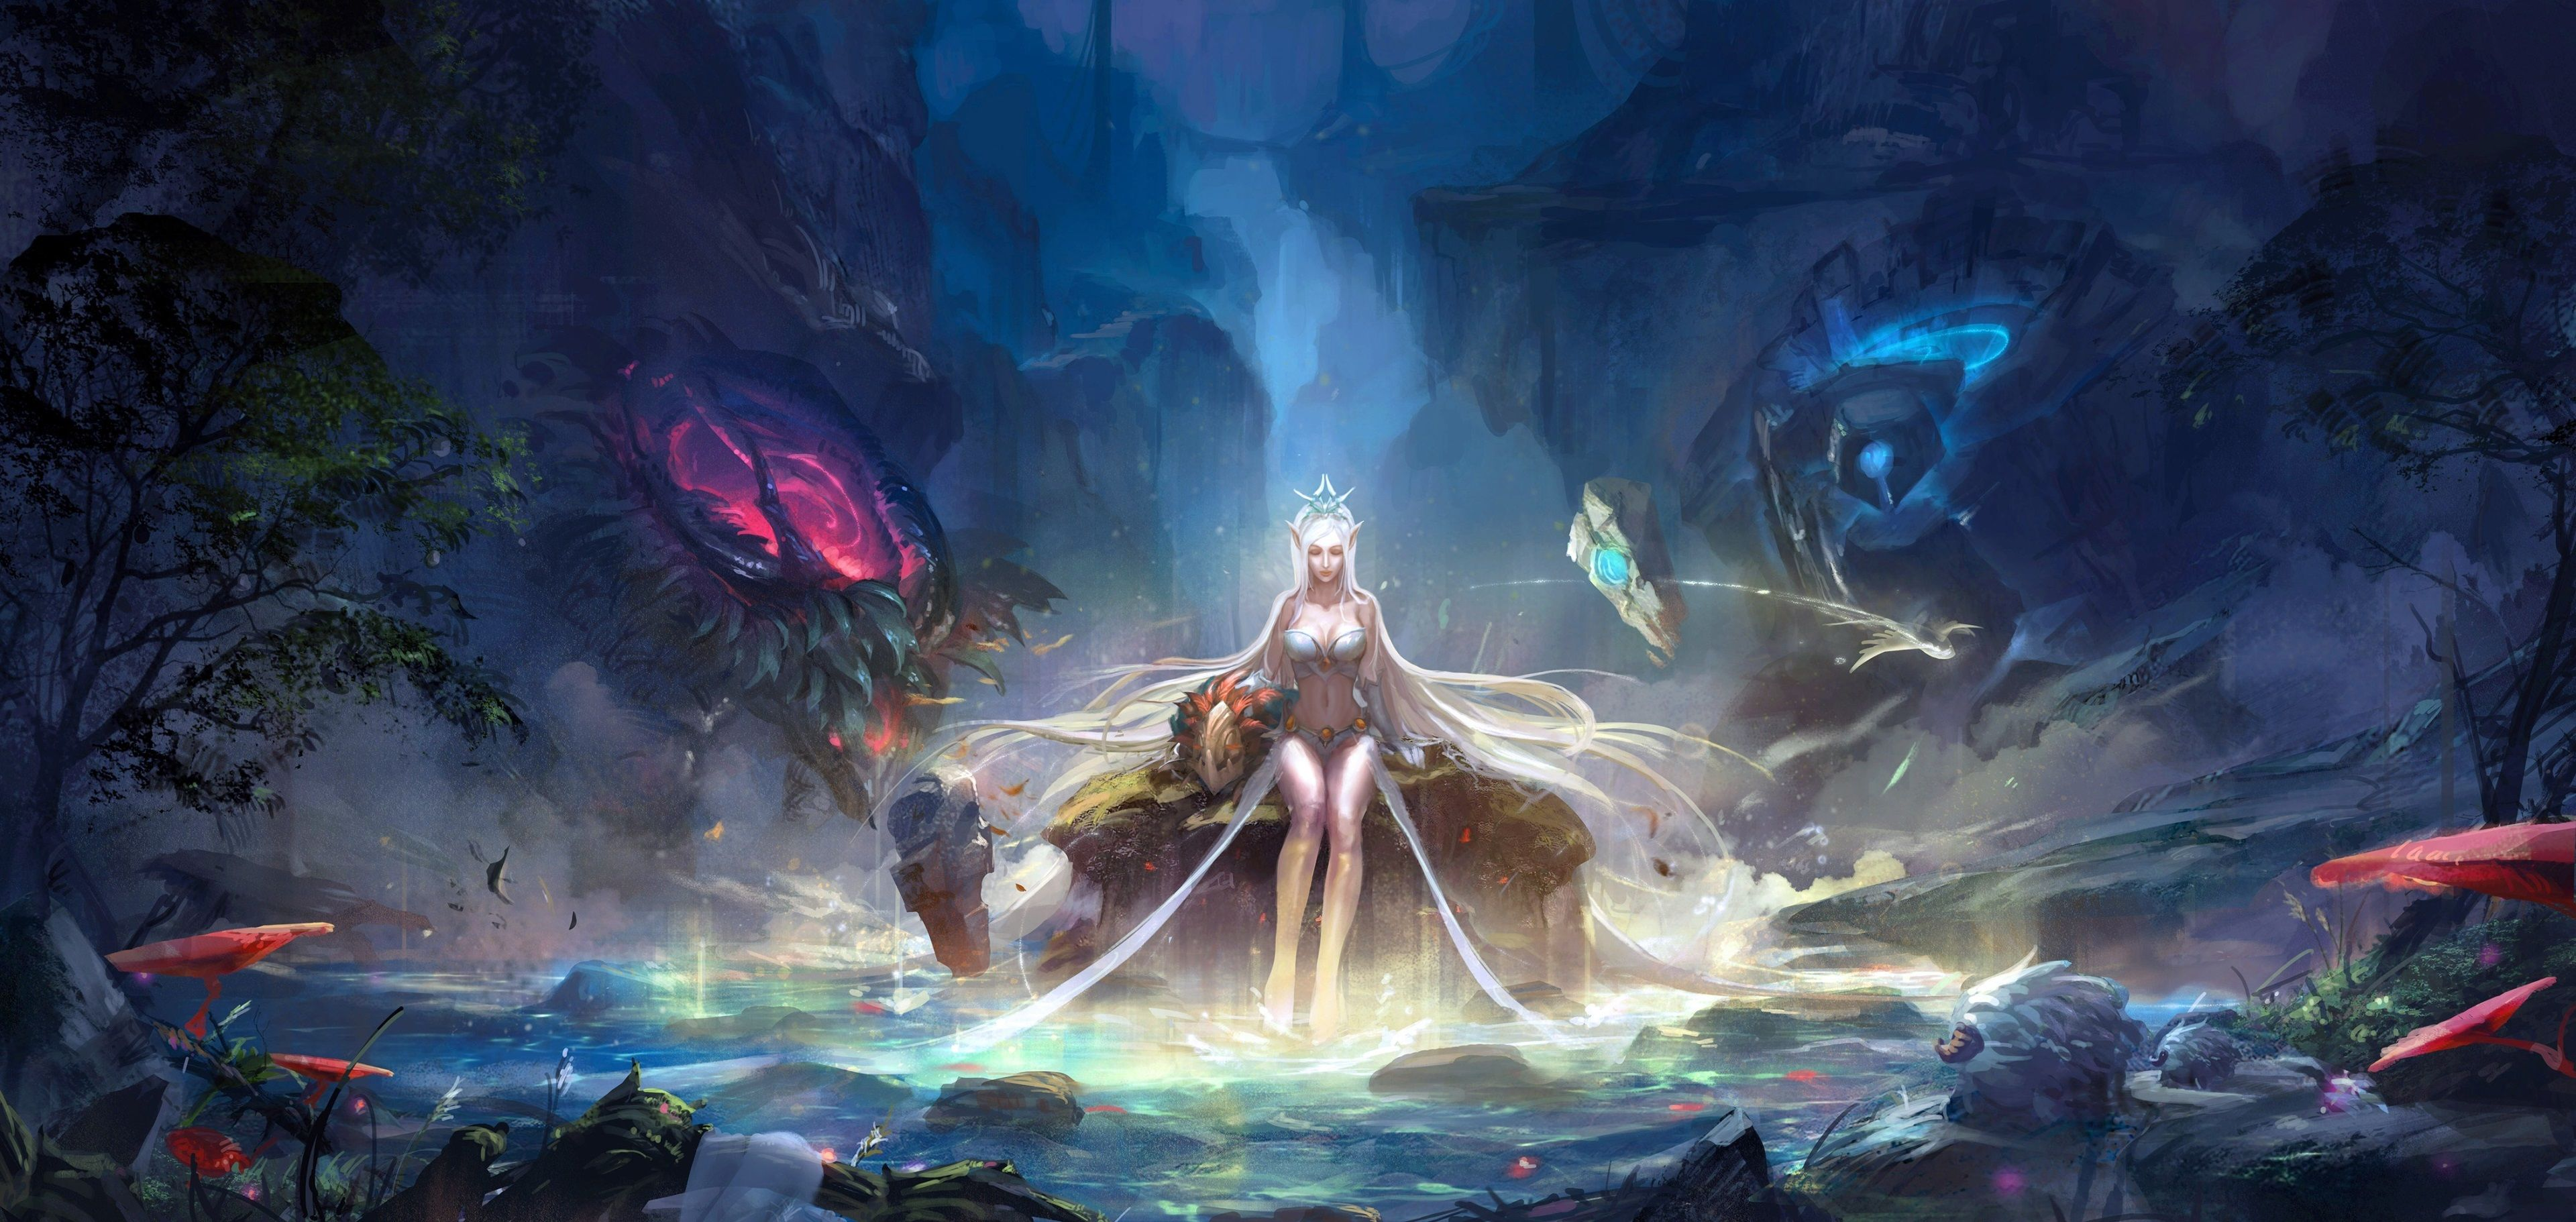 3840x1822 League Of Legends 4k Wallpapers For Computer Lol League Of Legends League Of Legends Fantasy Girl